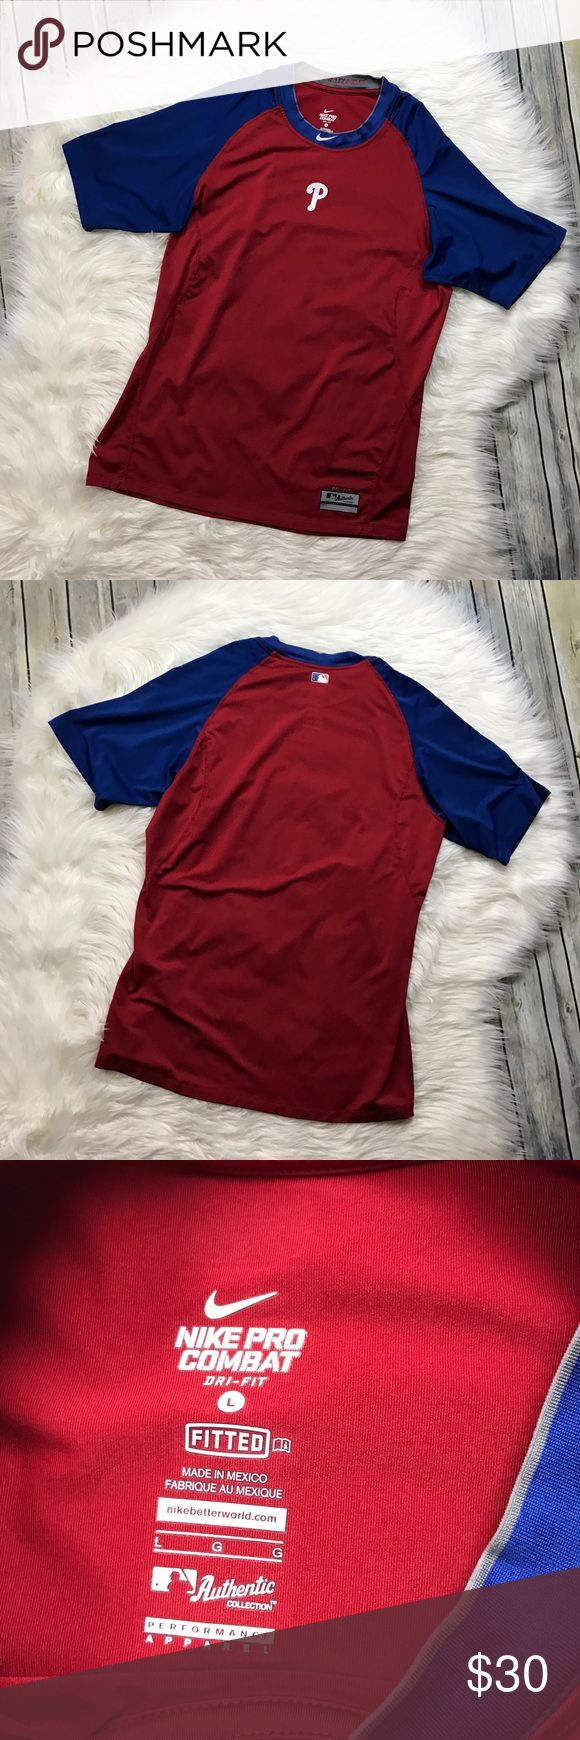 "Nike Pro Combat Men's Philadelphia Phillies Tee Very nice mens short sleeve red and blue Phillies shirt. Gently used with no flaws. 84% polyester, 16% spandex.   Measurements laying flat (without stretching)—  Armpit to armpit: 21.5"" Length, shoulder to hem: 28.5"" Nike Shirts"